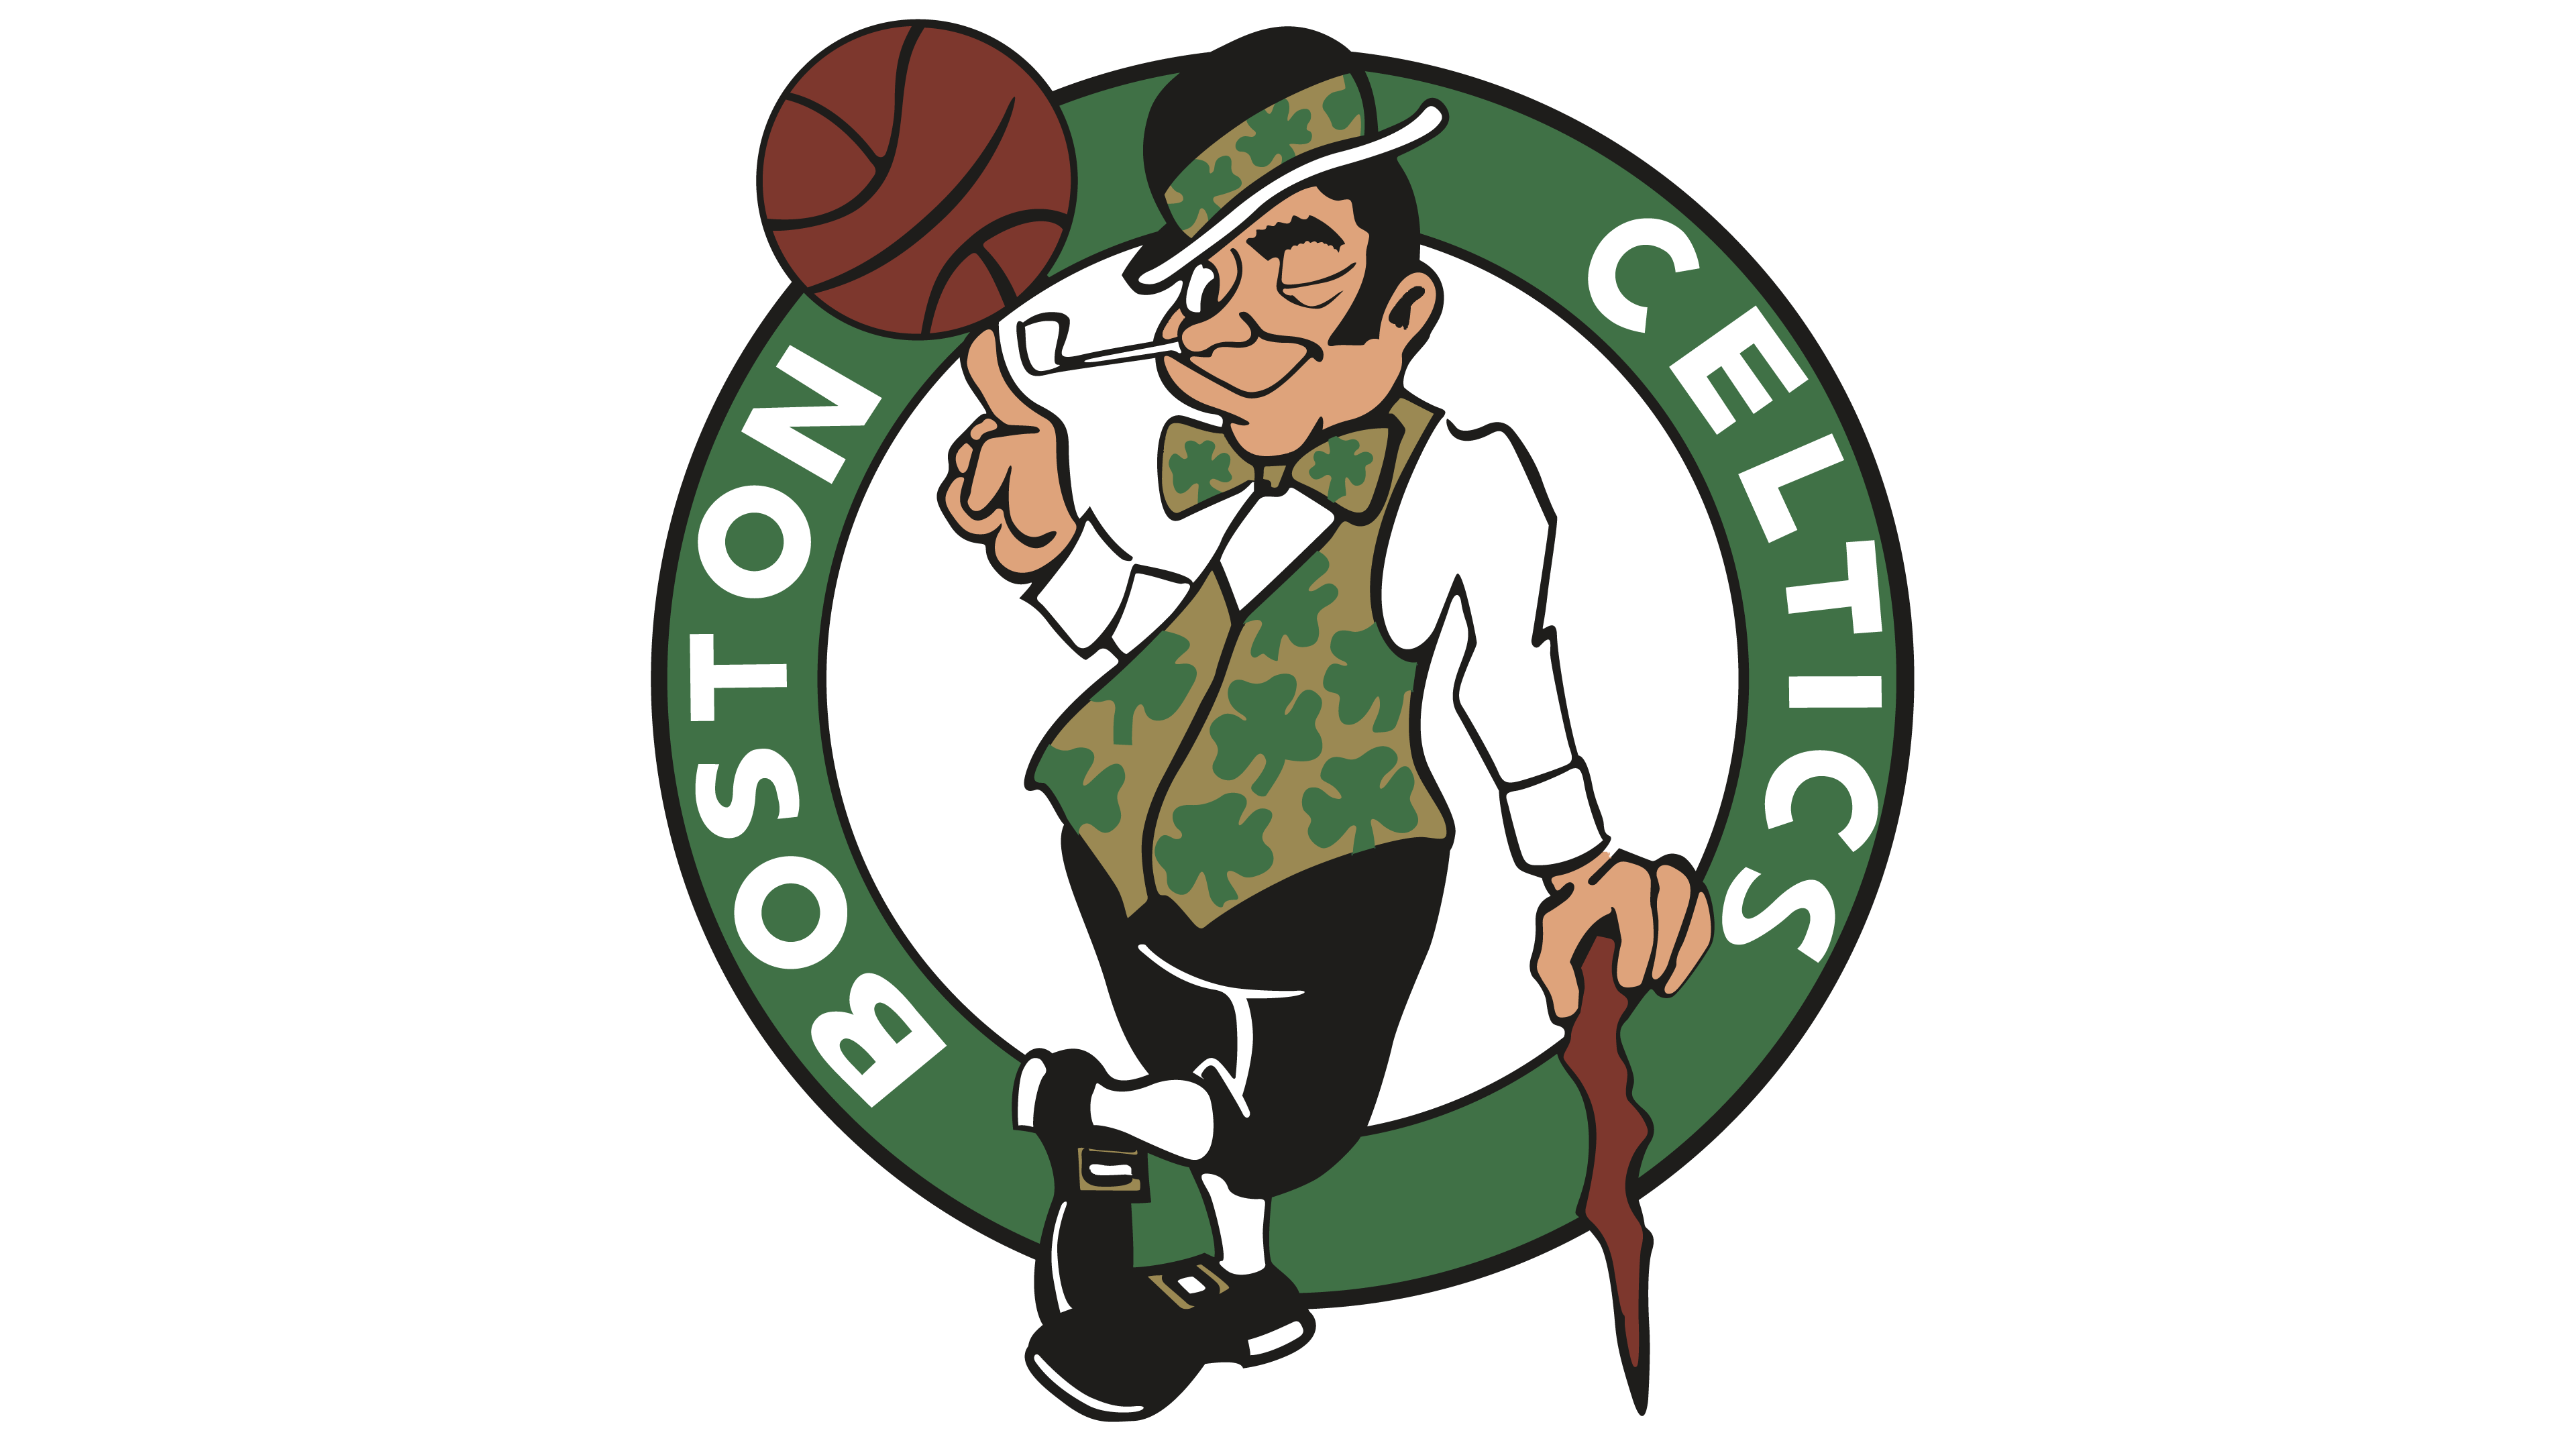 Irish playing basketball clipart clipart freeuse library Boston Celtics Logo - Interesting History of the Team Name and emblem clipart freeuse library